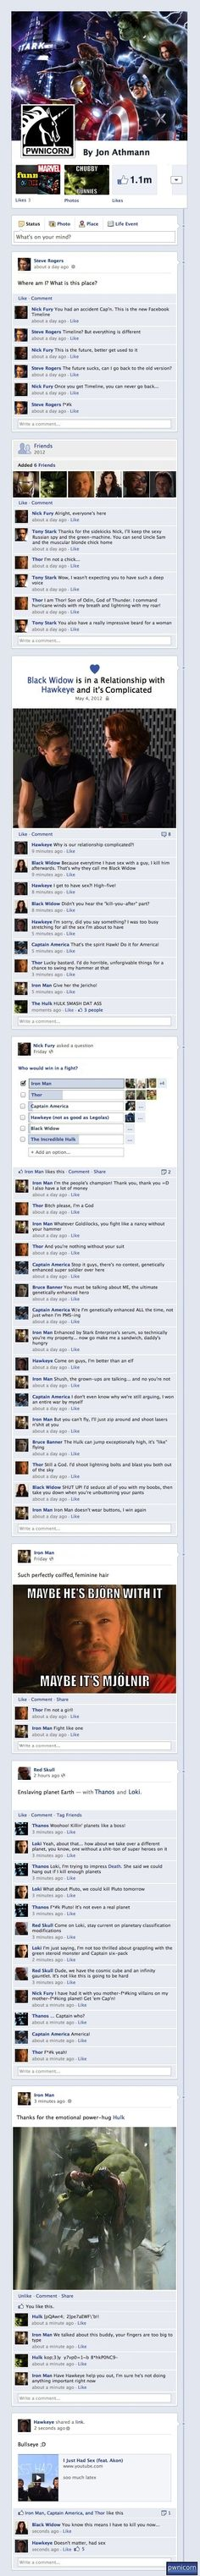 the Avengers on Facebook.... and I don't care if you're a comic book geek or not. This. Is. Hilarious. :D